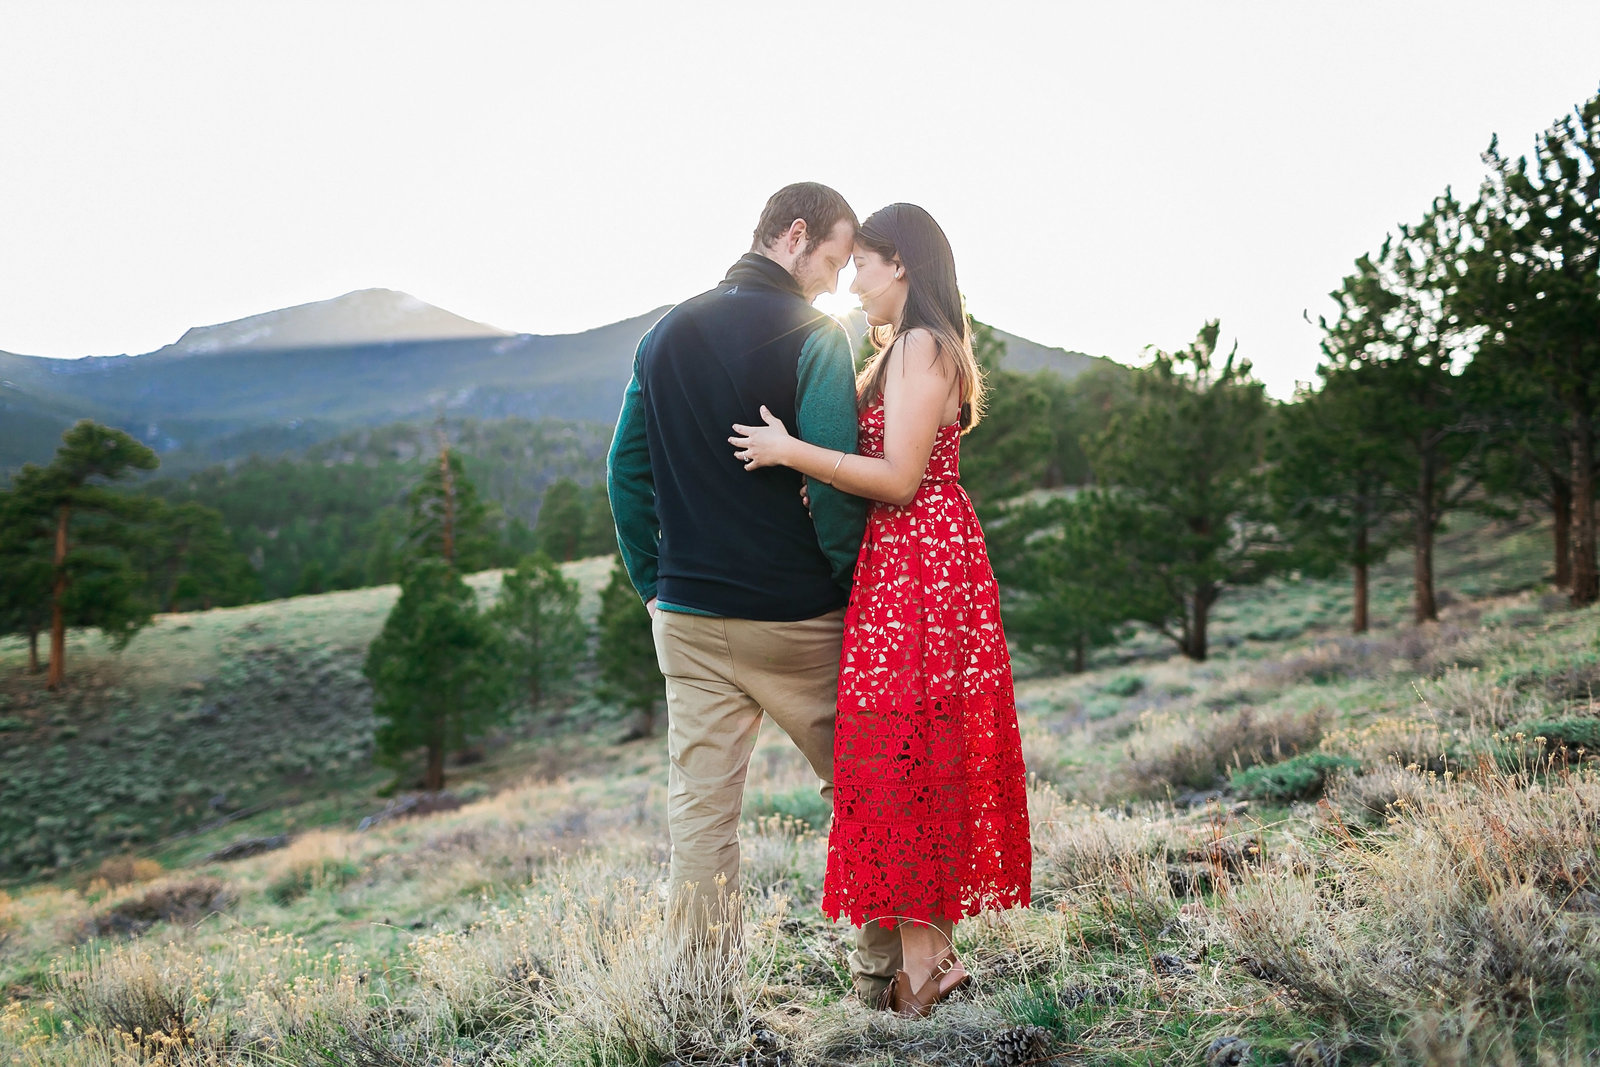 Scott&ElinaEngagement2017-23